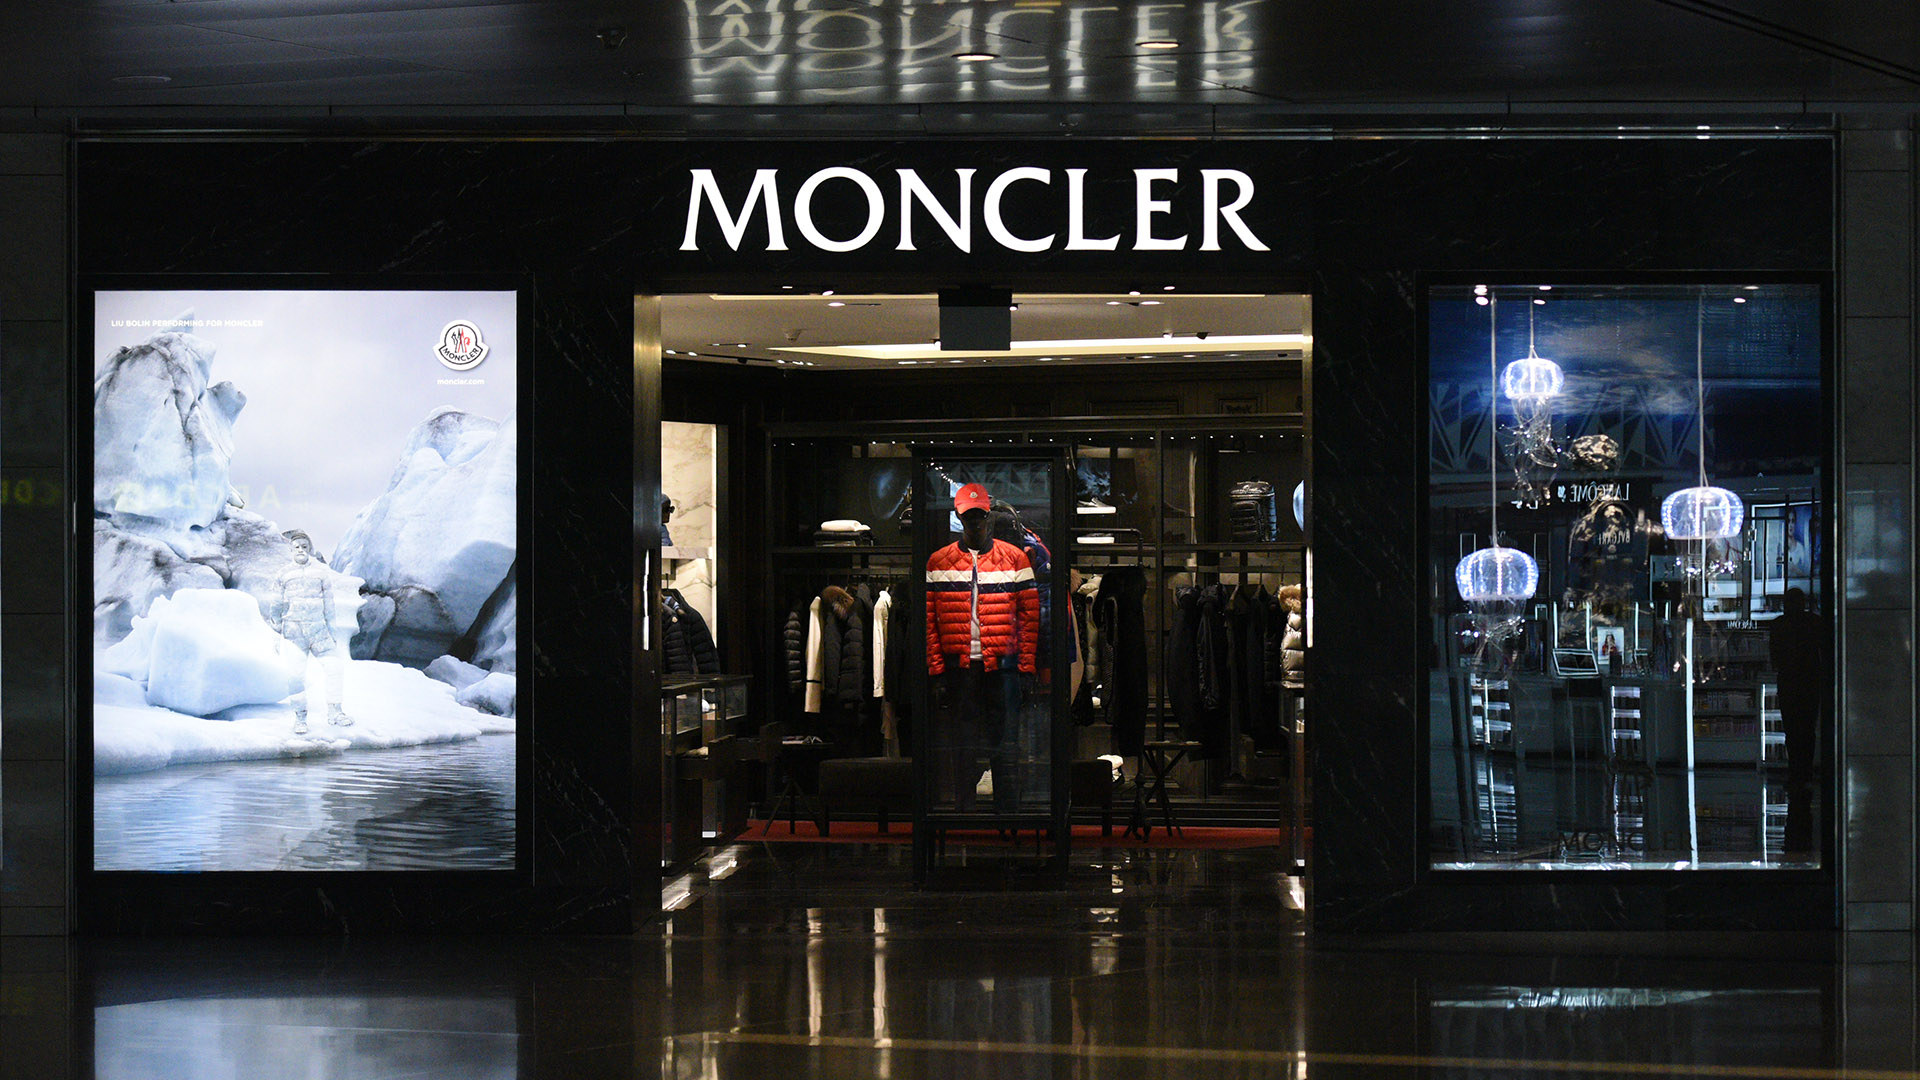 Moncler Jelly Fish Window produced by ME Visual, Qatar. This display uses Fiber-optic lights.